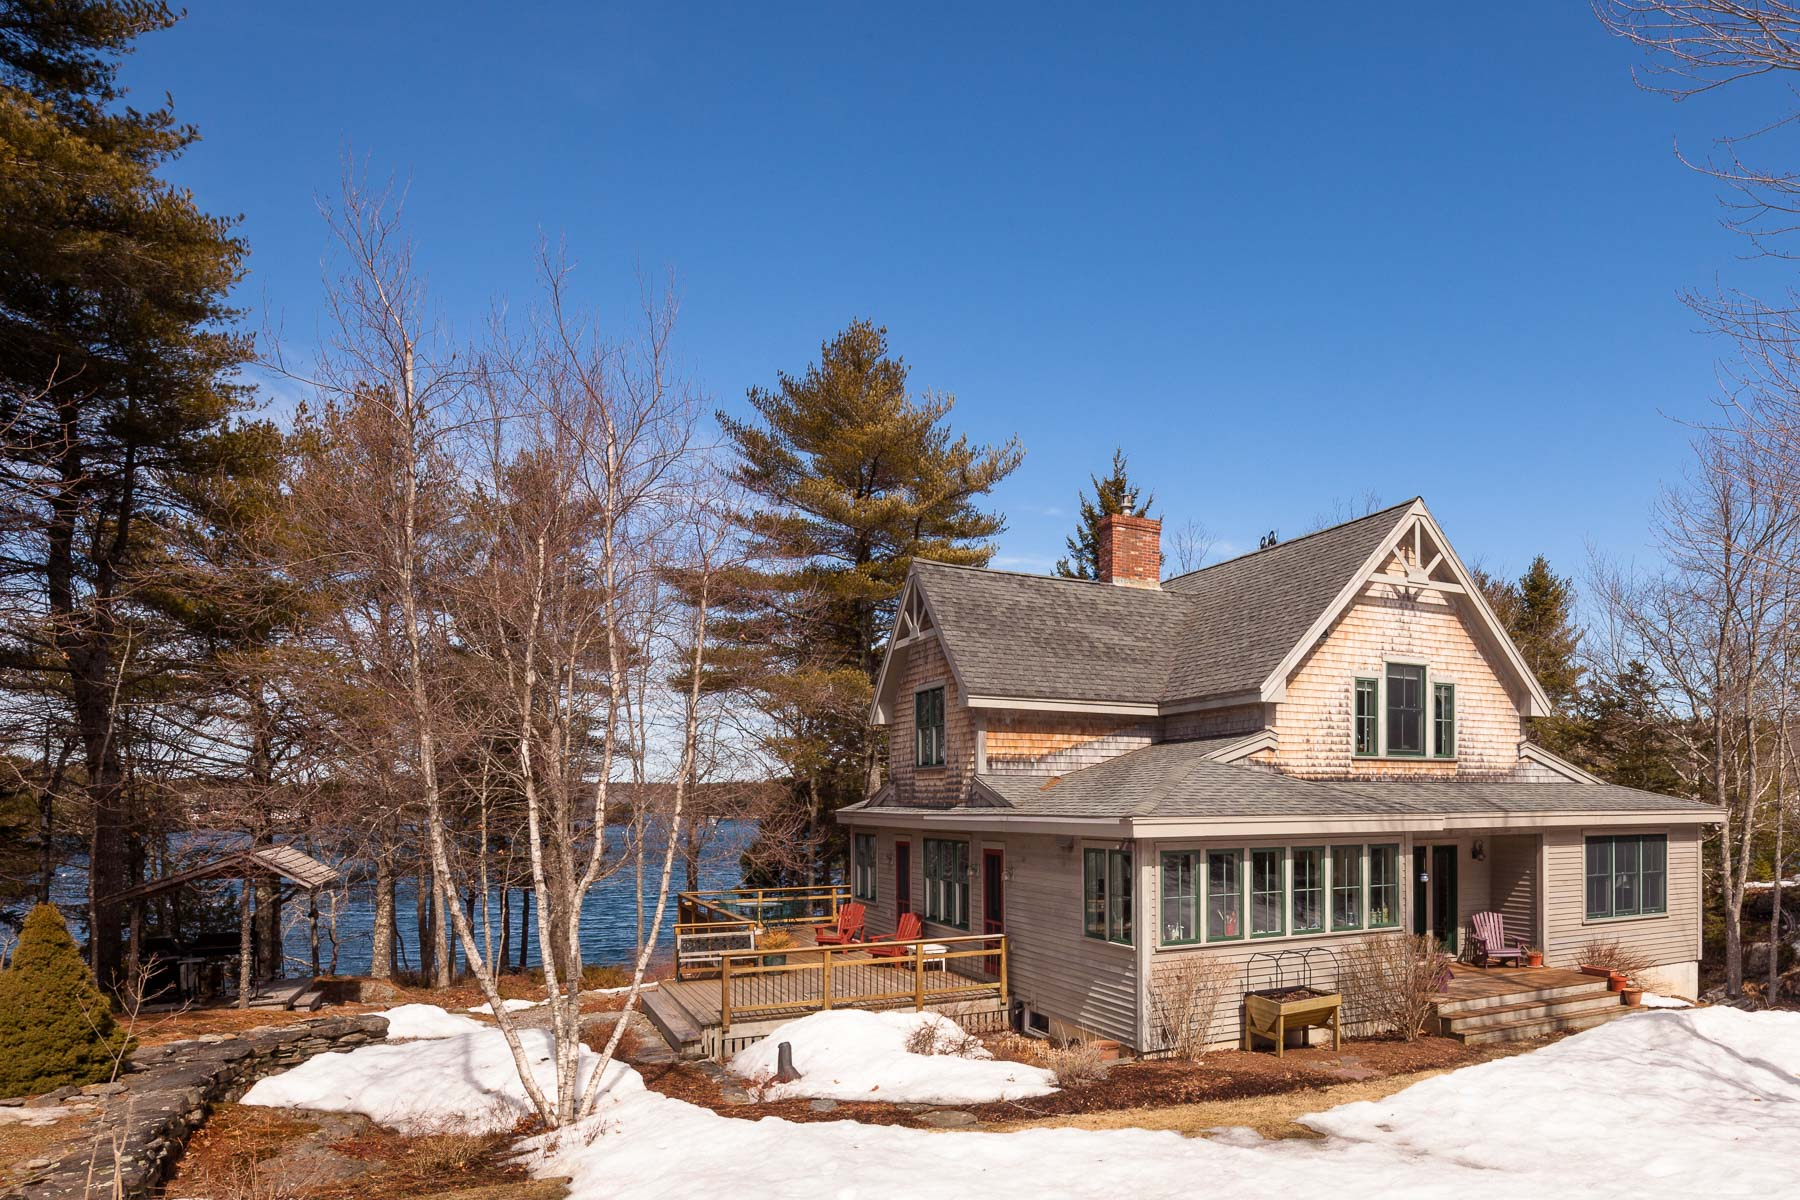 Single Family Home for Sale at Narrows Way 72 Narrows Way Georgetown, Maine 04556 United States